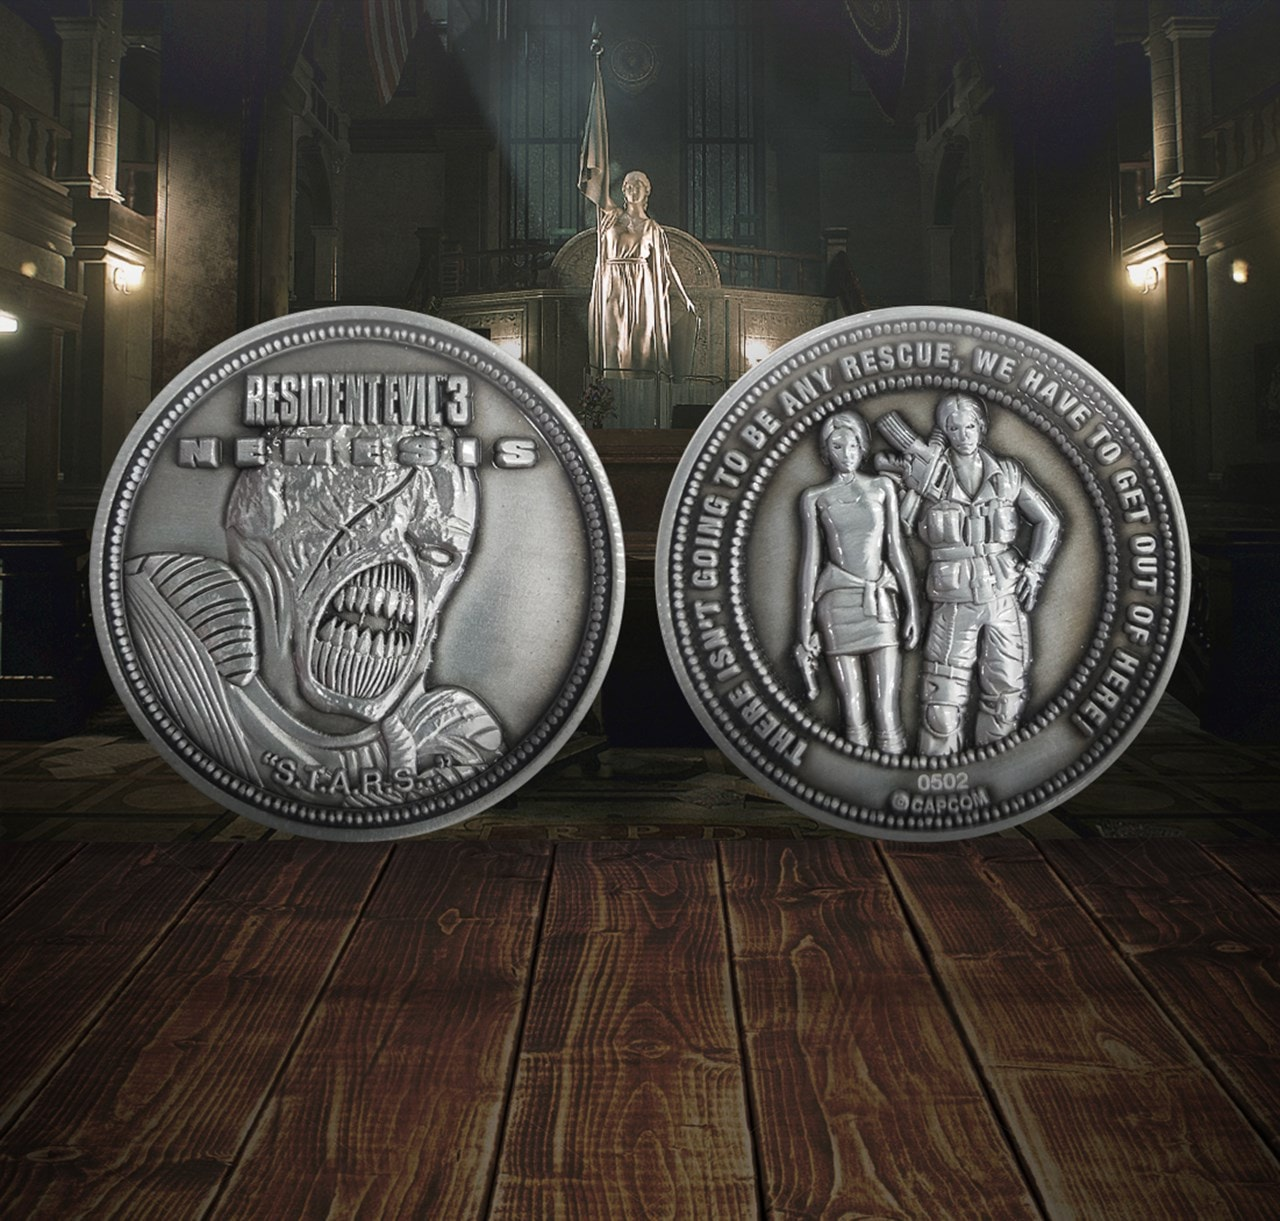 Resident Evil 3: Limited Edition Coin - 1